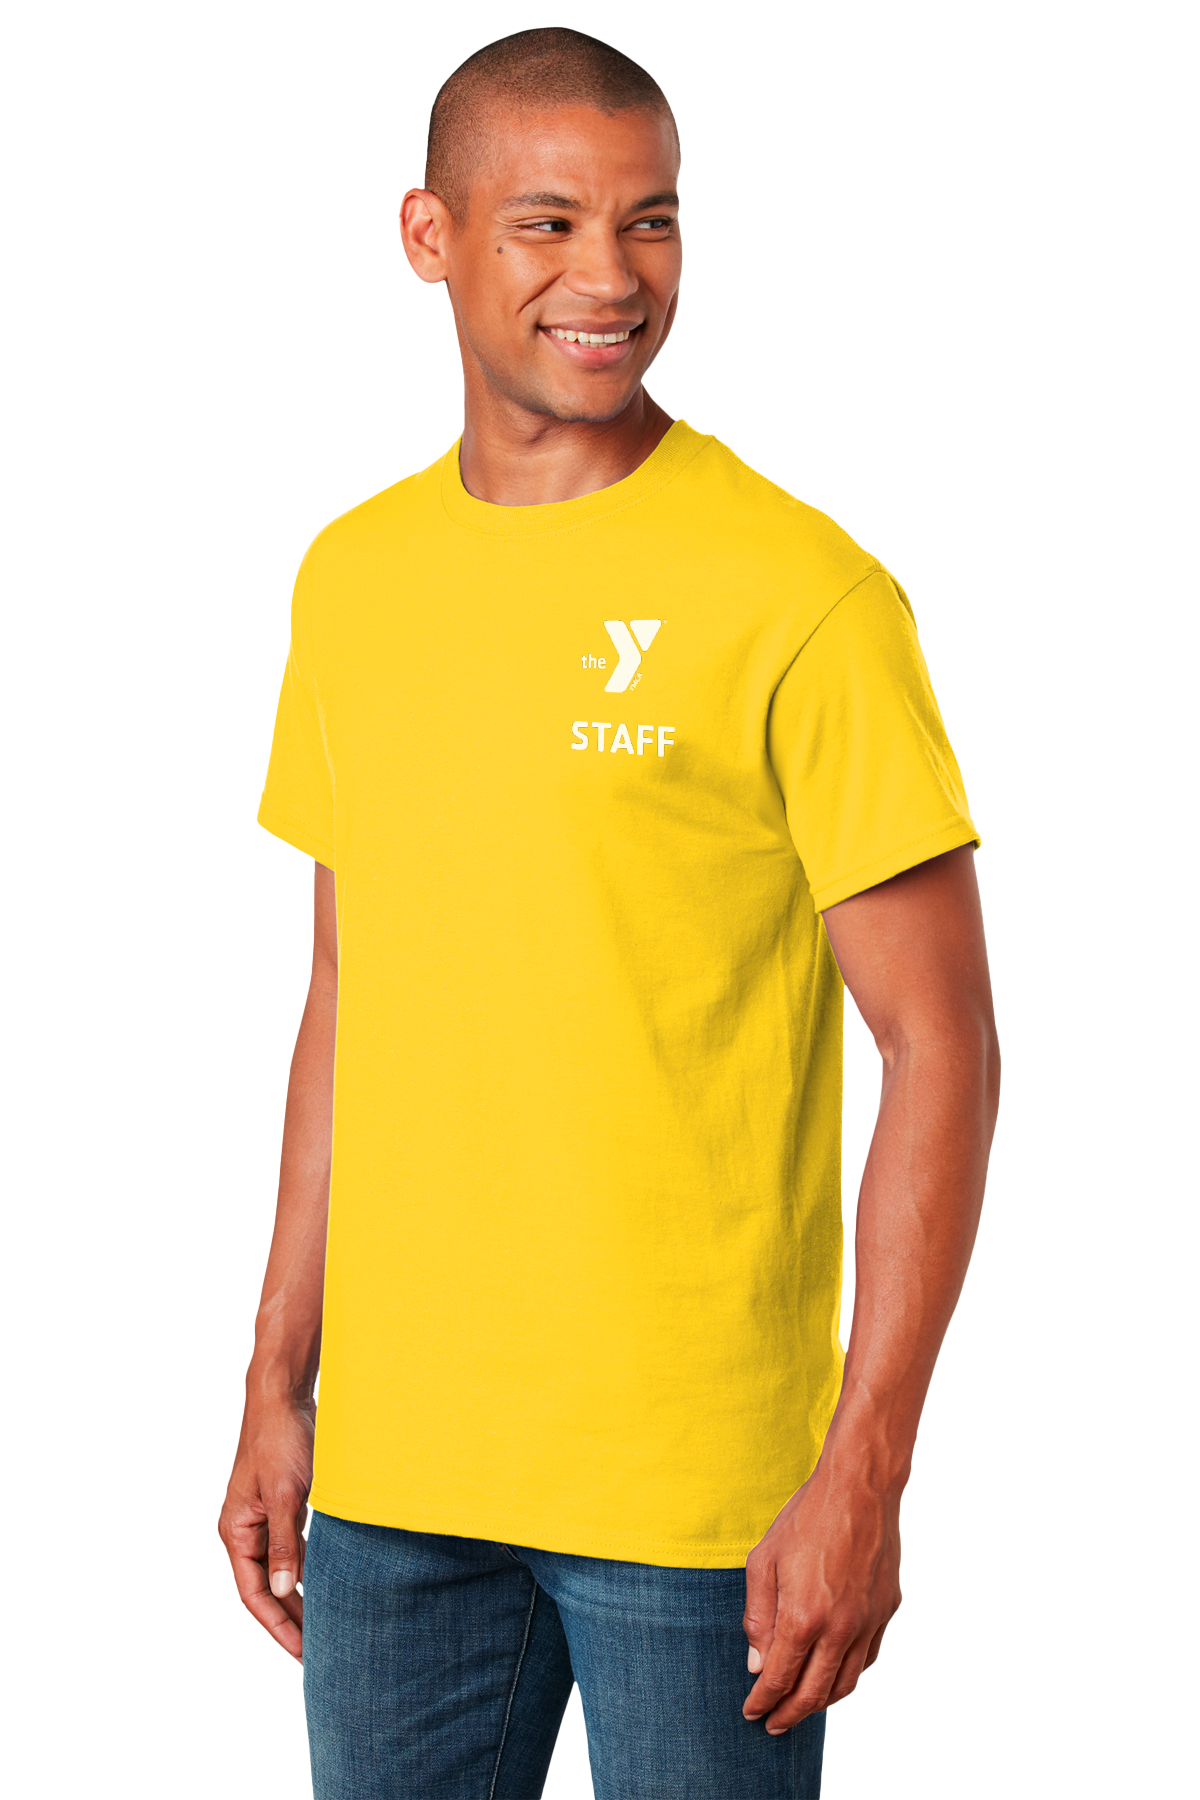 YMCA Staff Apparel subcategory image